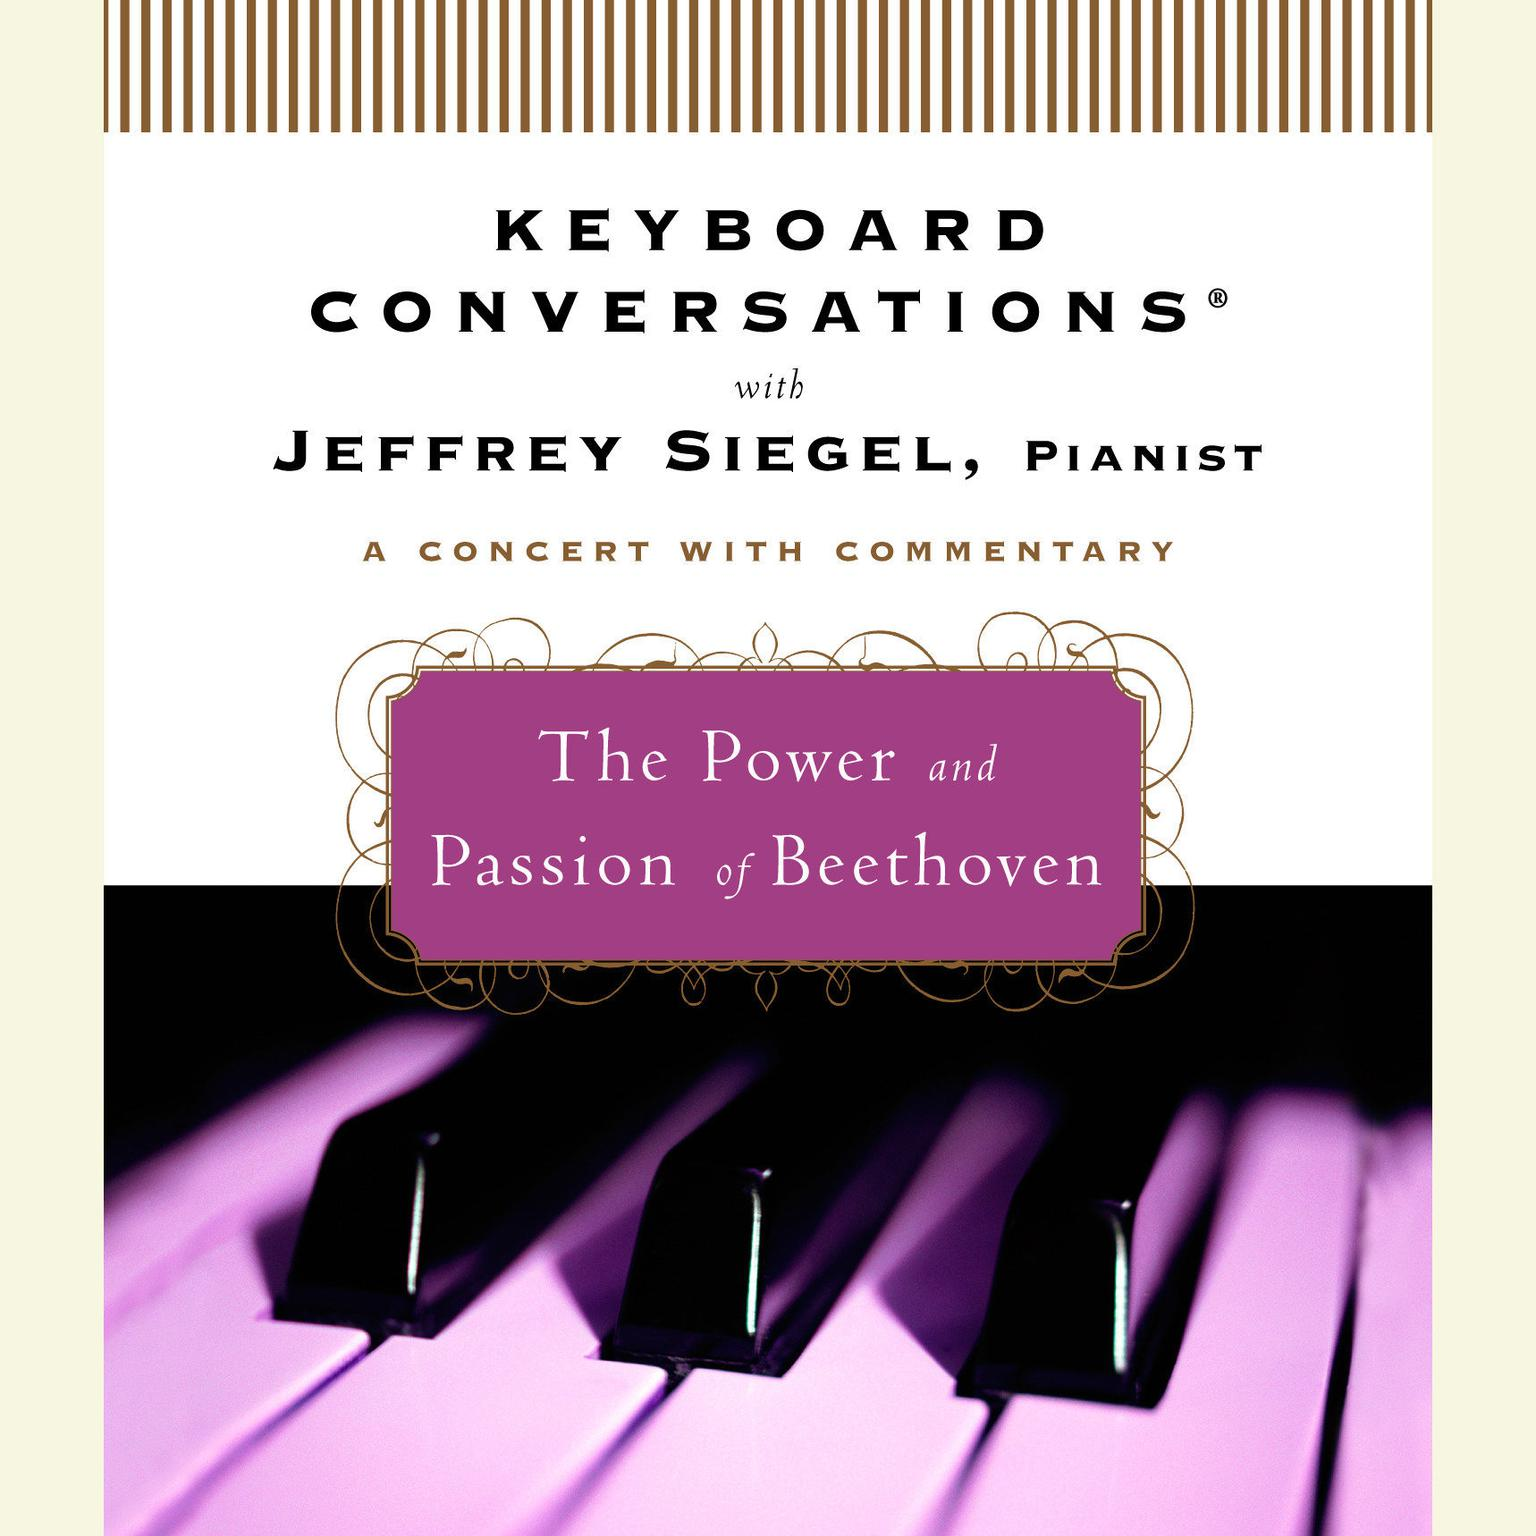 Printable Keyboard Conversations®: The Power and Passion of Beethoven Audiobook Cover Art